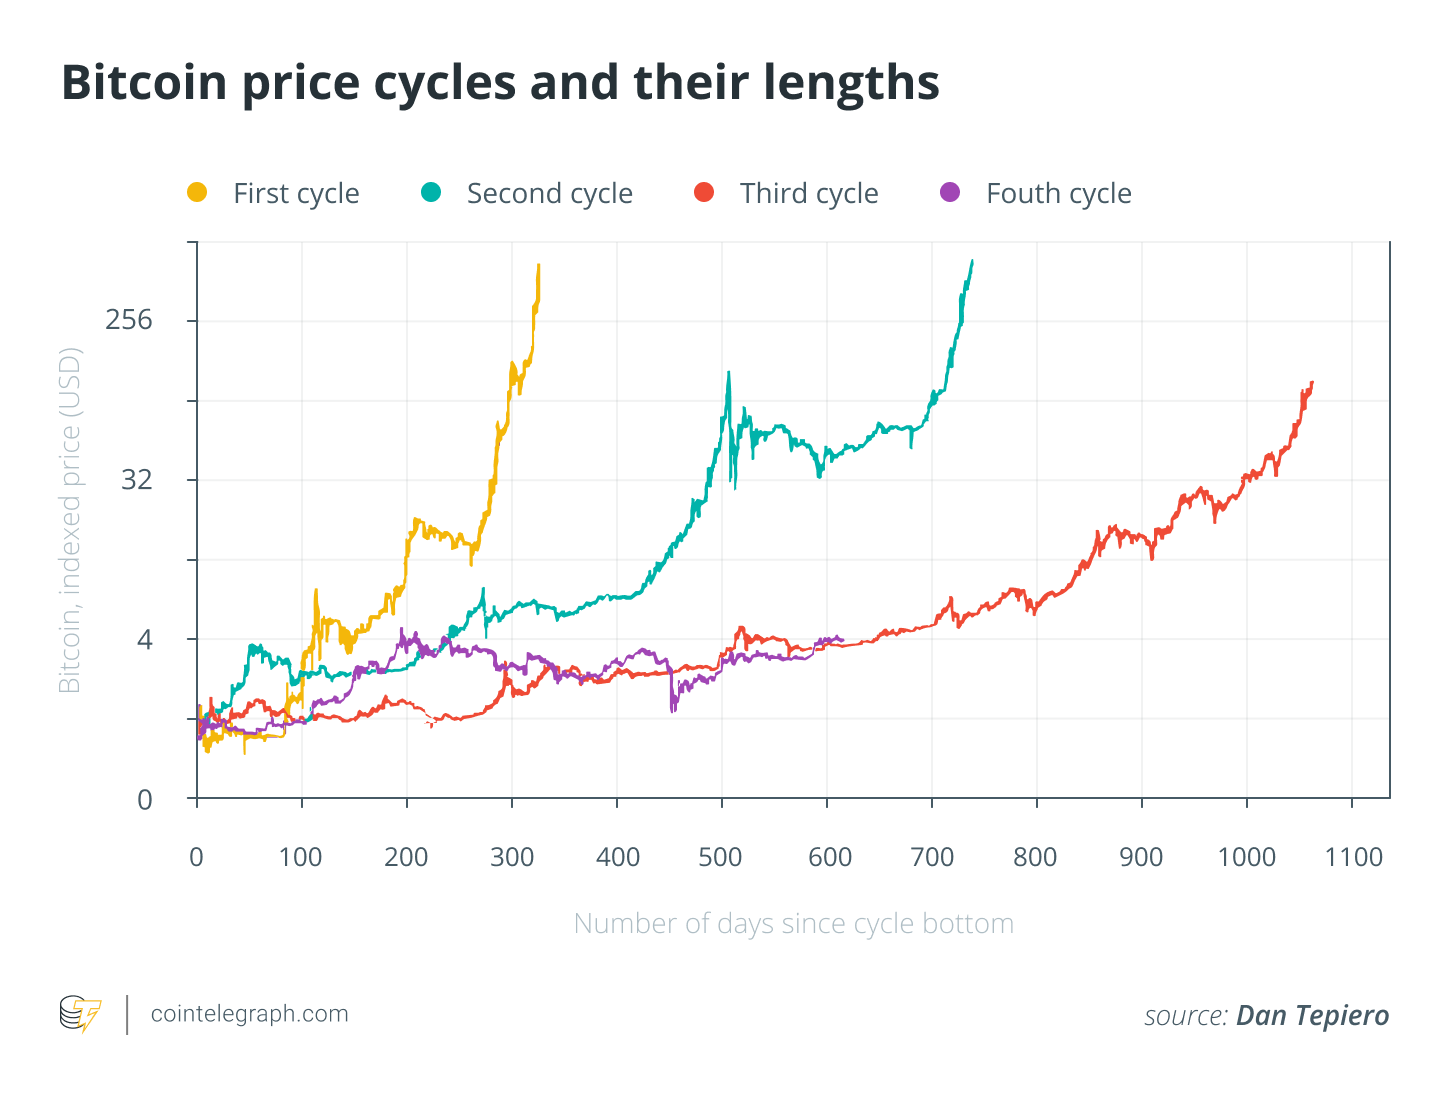 Bitcoin price cycles and their lengths